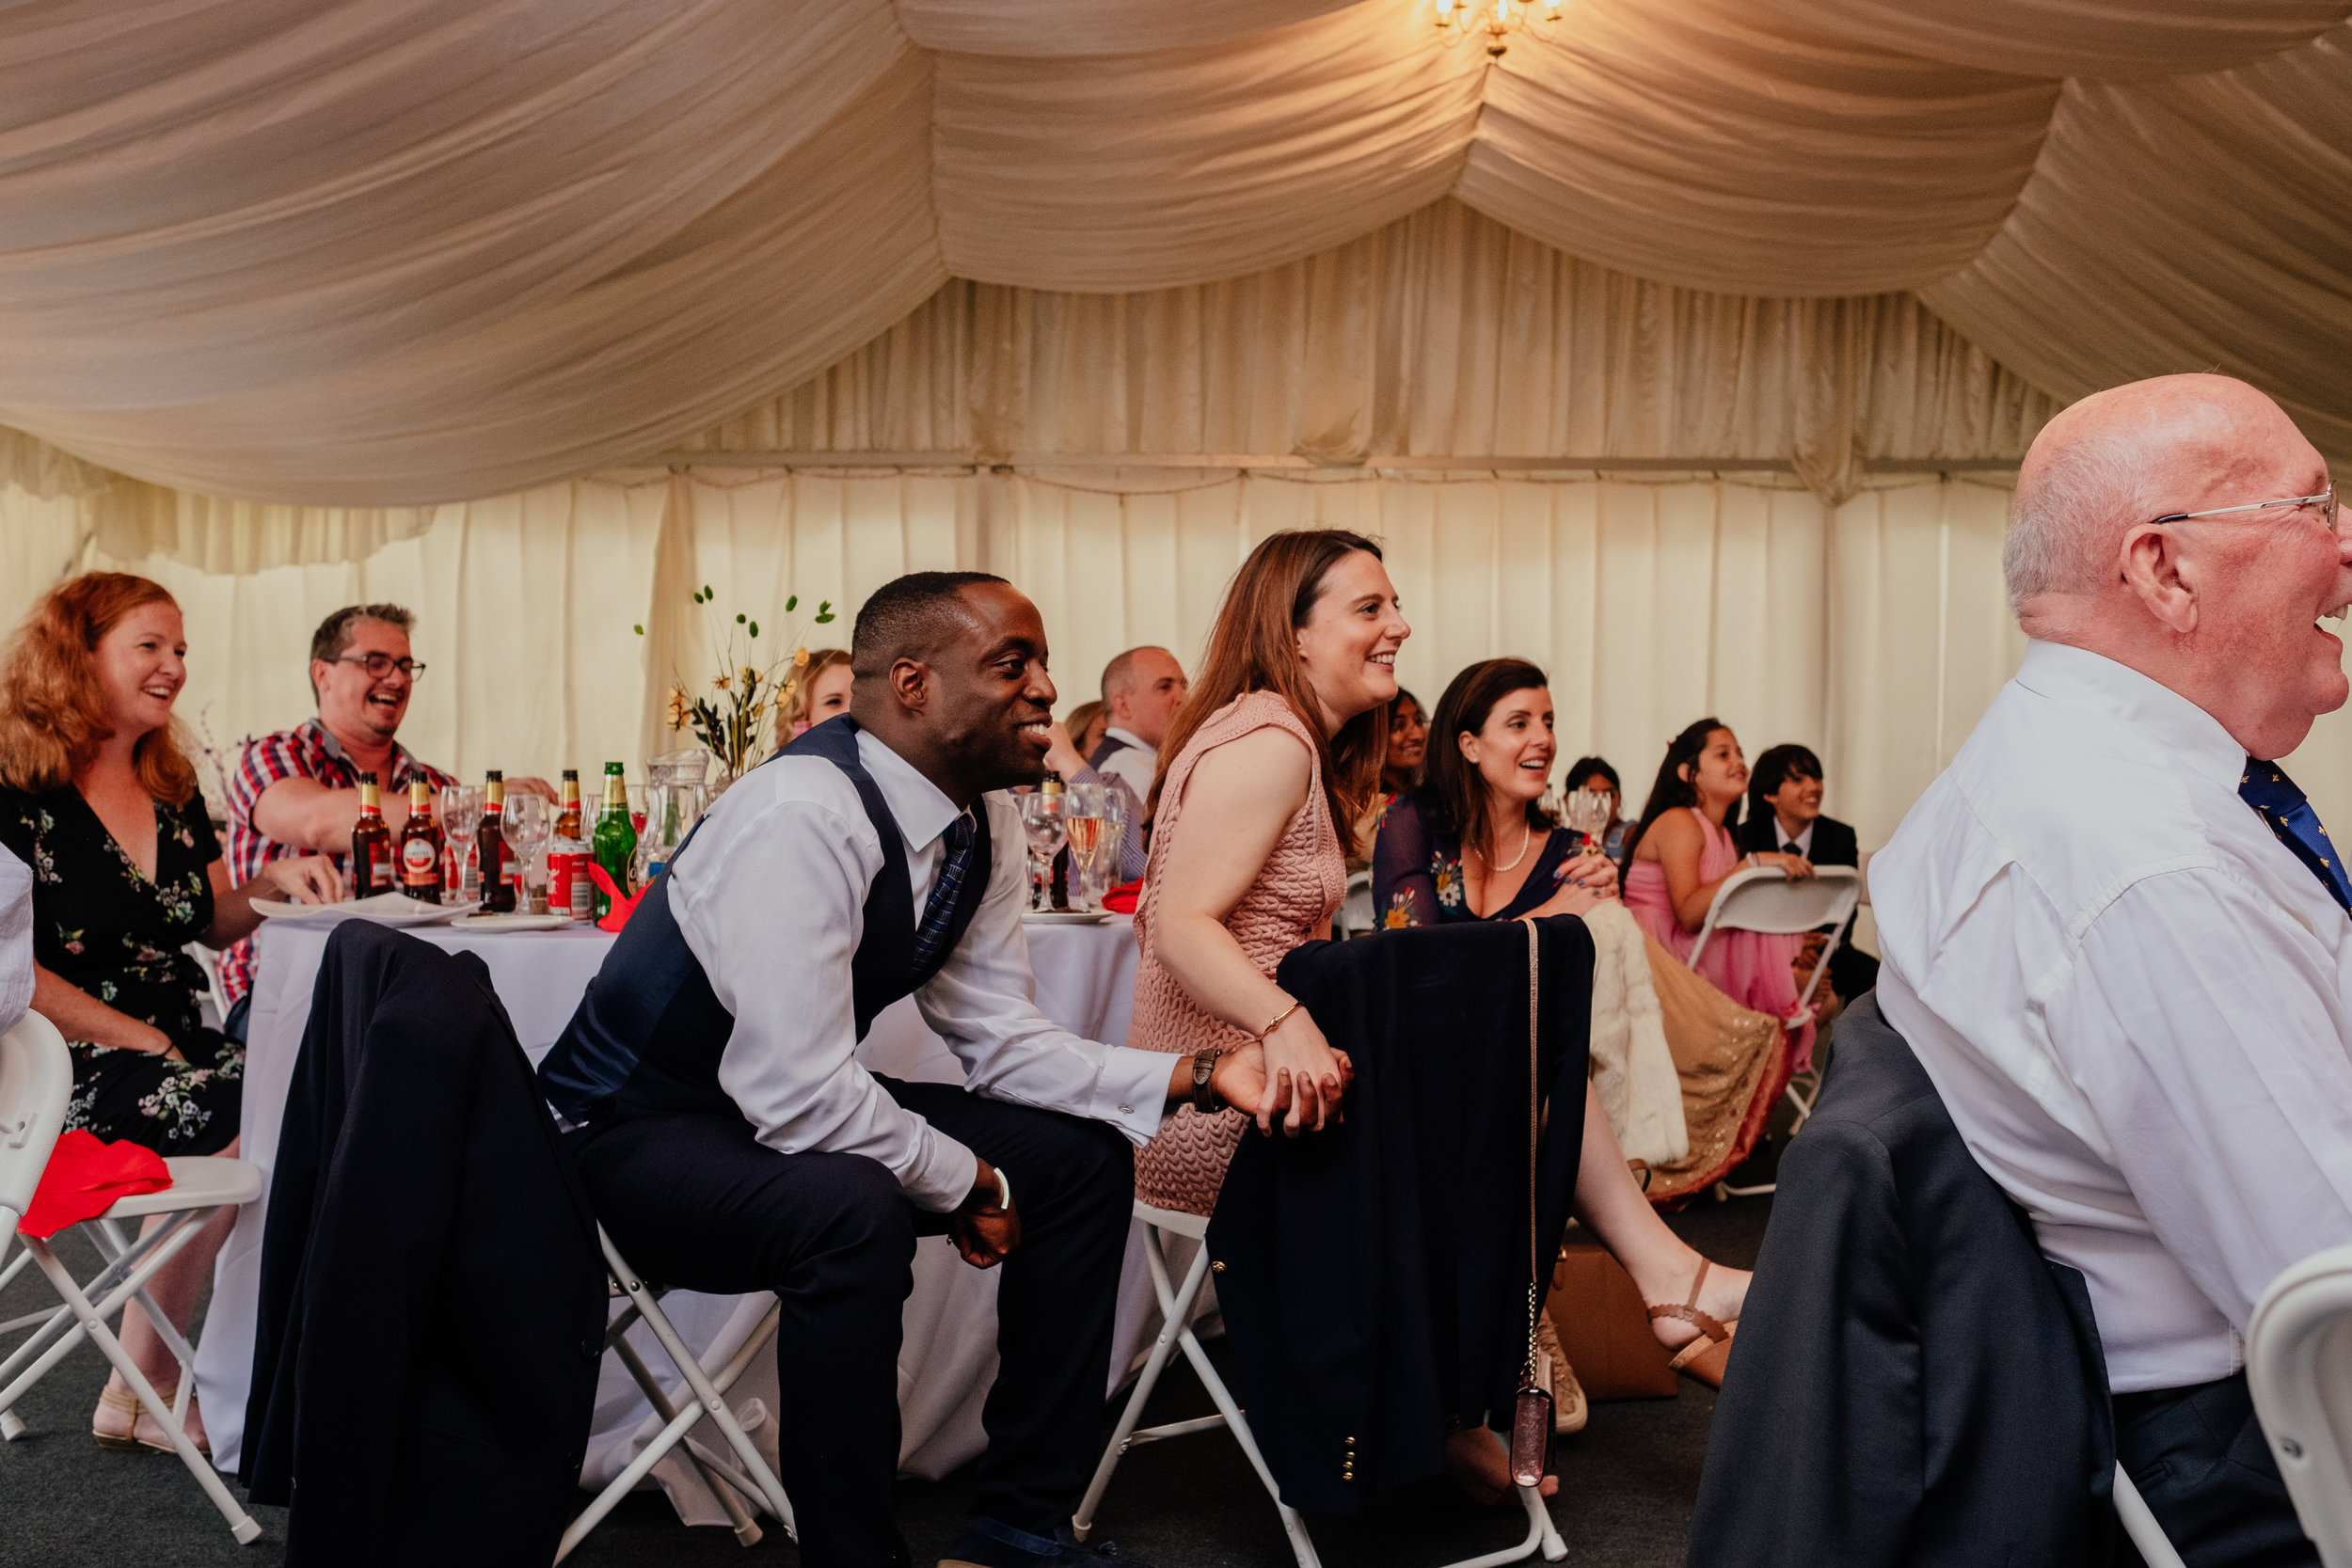 Guests holding hands and laughing during wedding reception